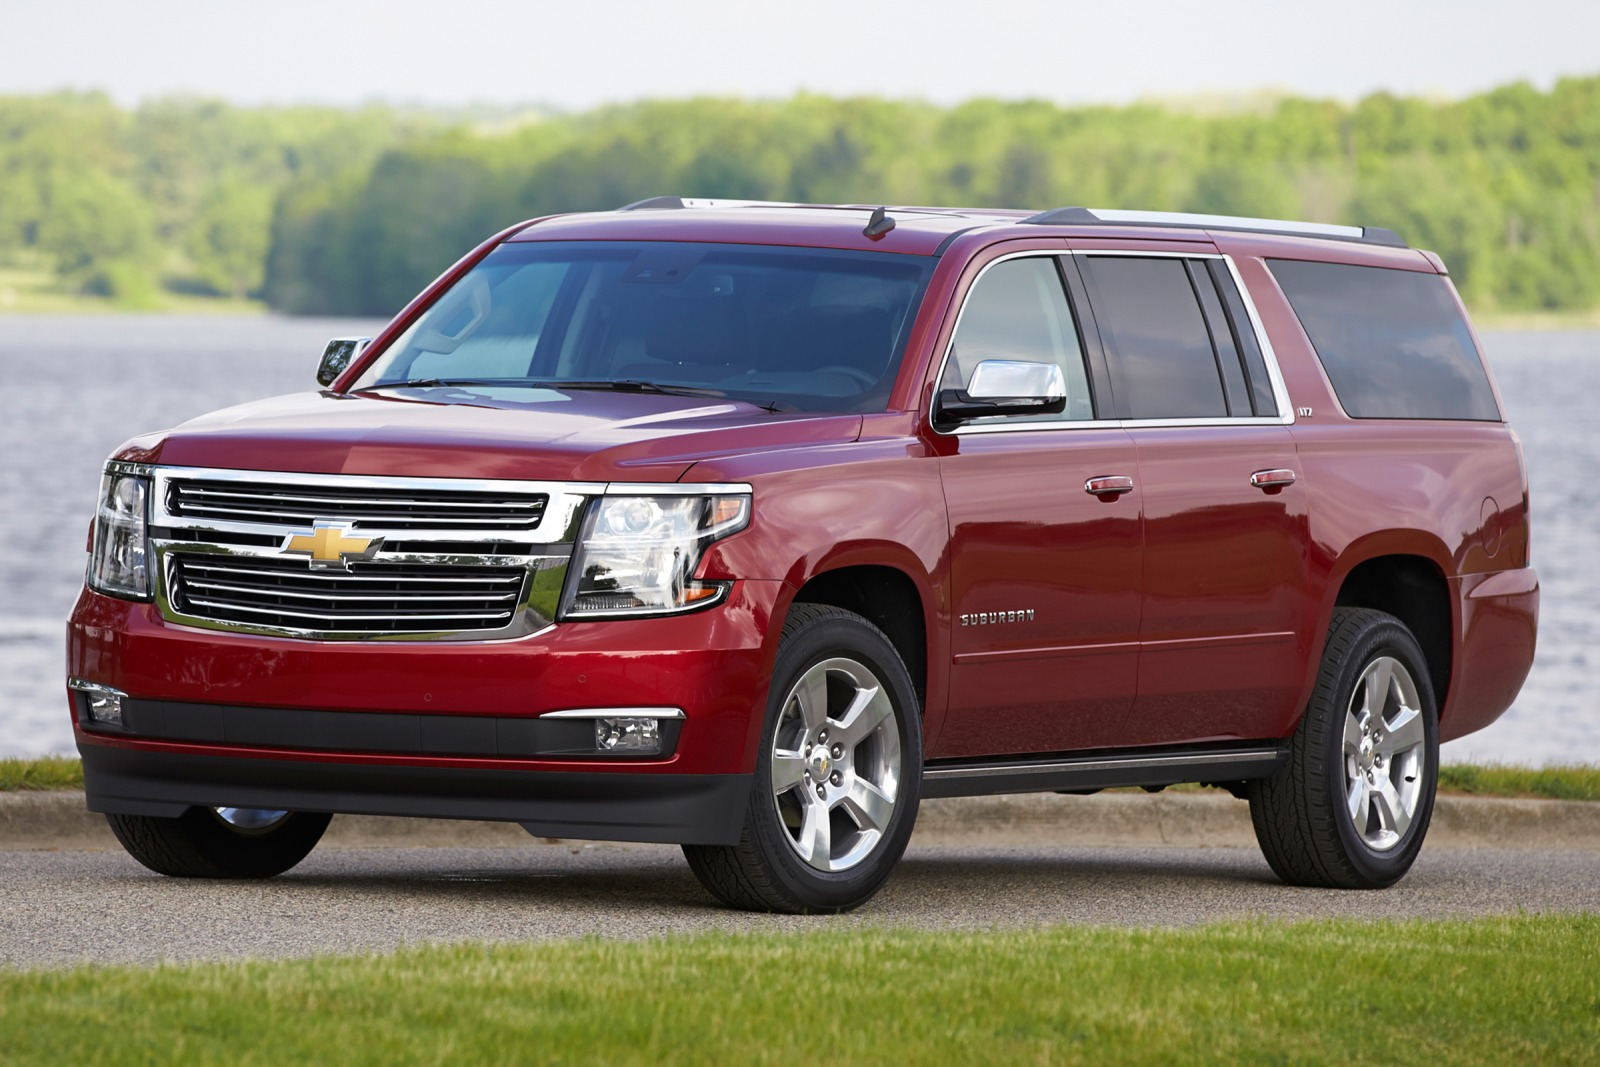 2016 Chevrolet Suburban LTZ 4WD Review By John Heilig